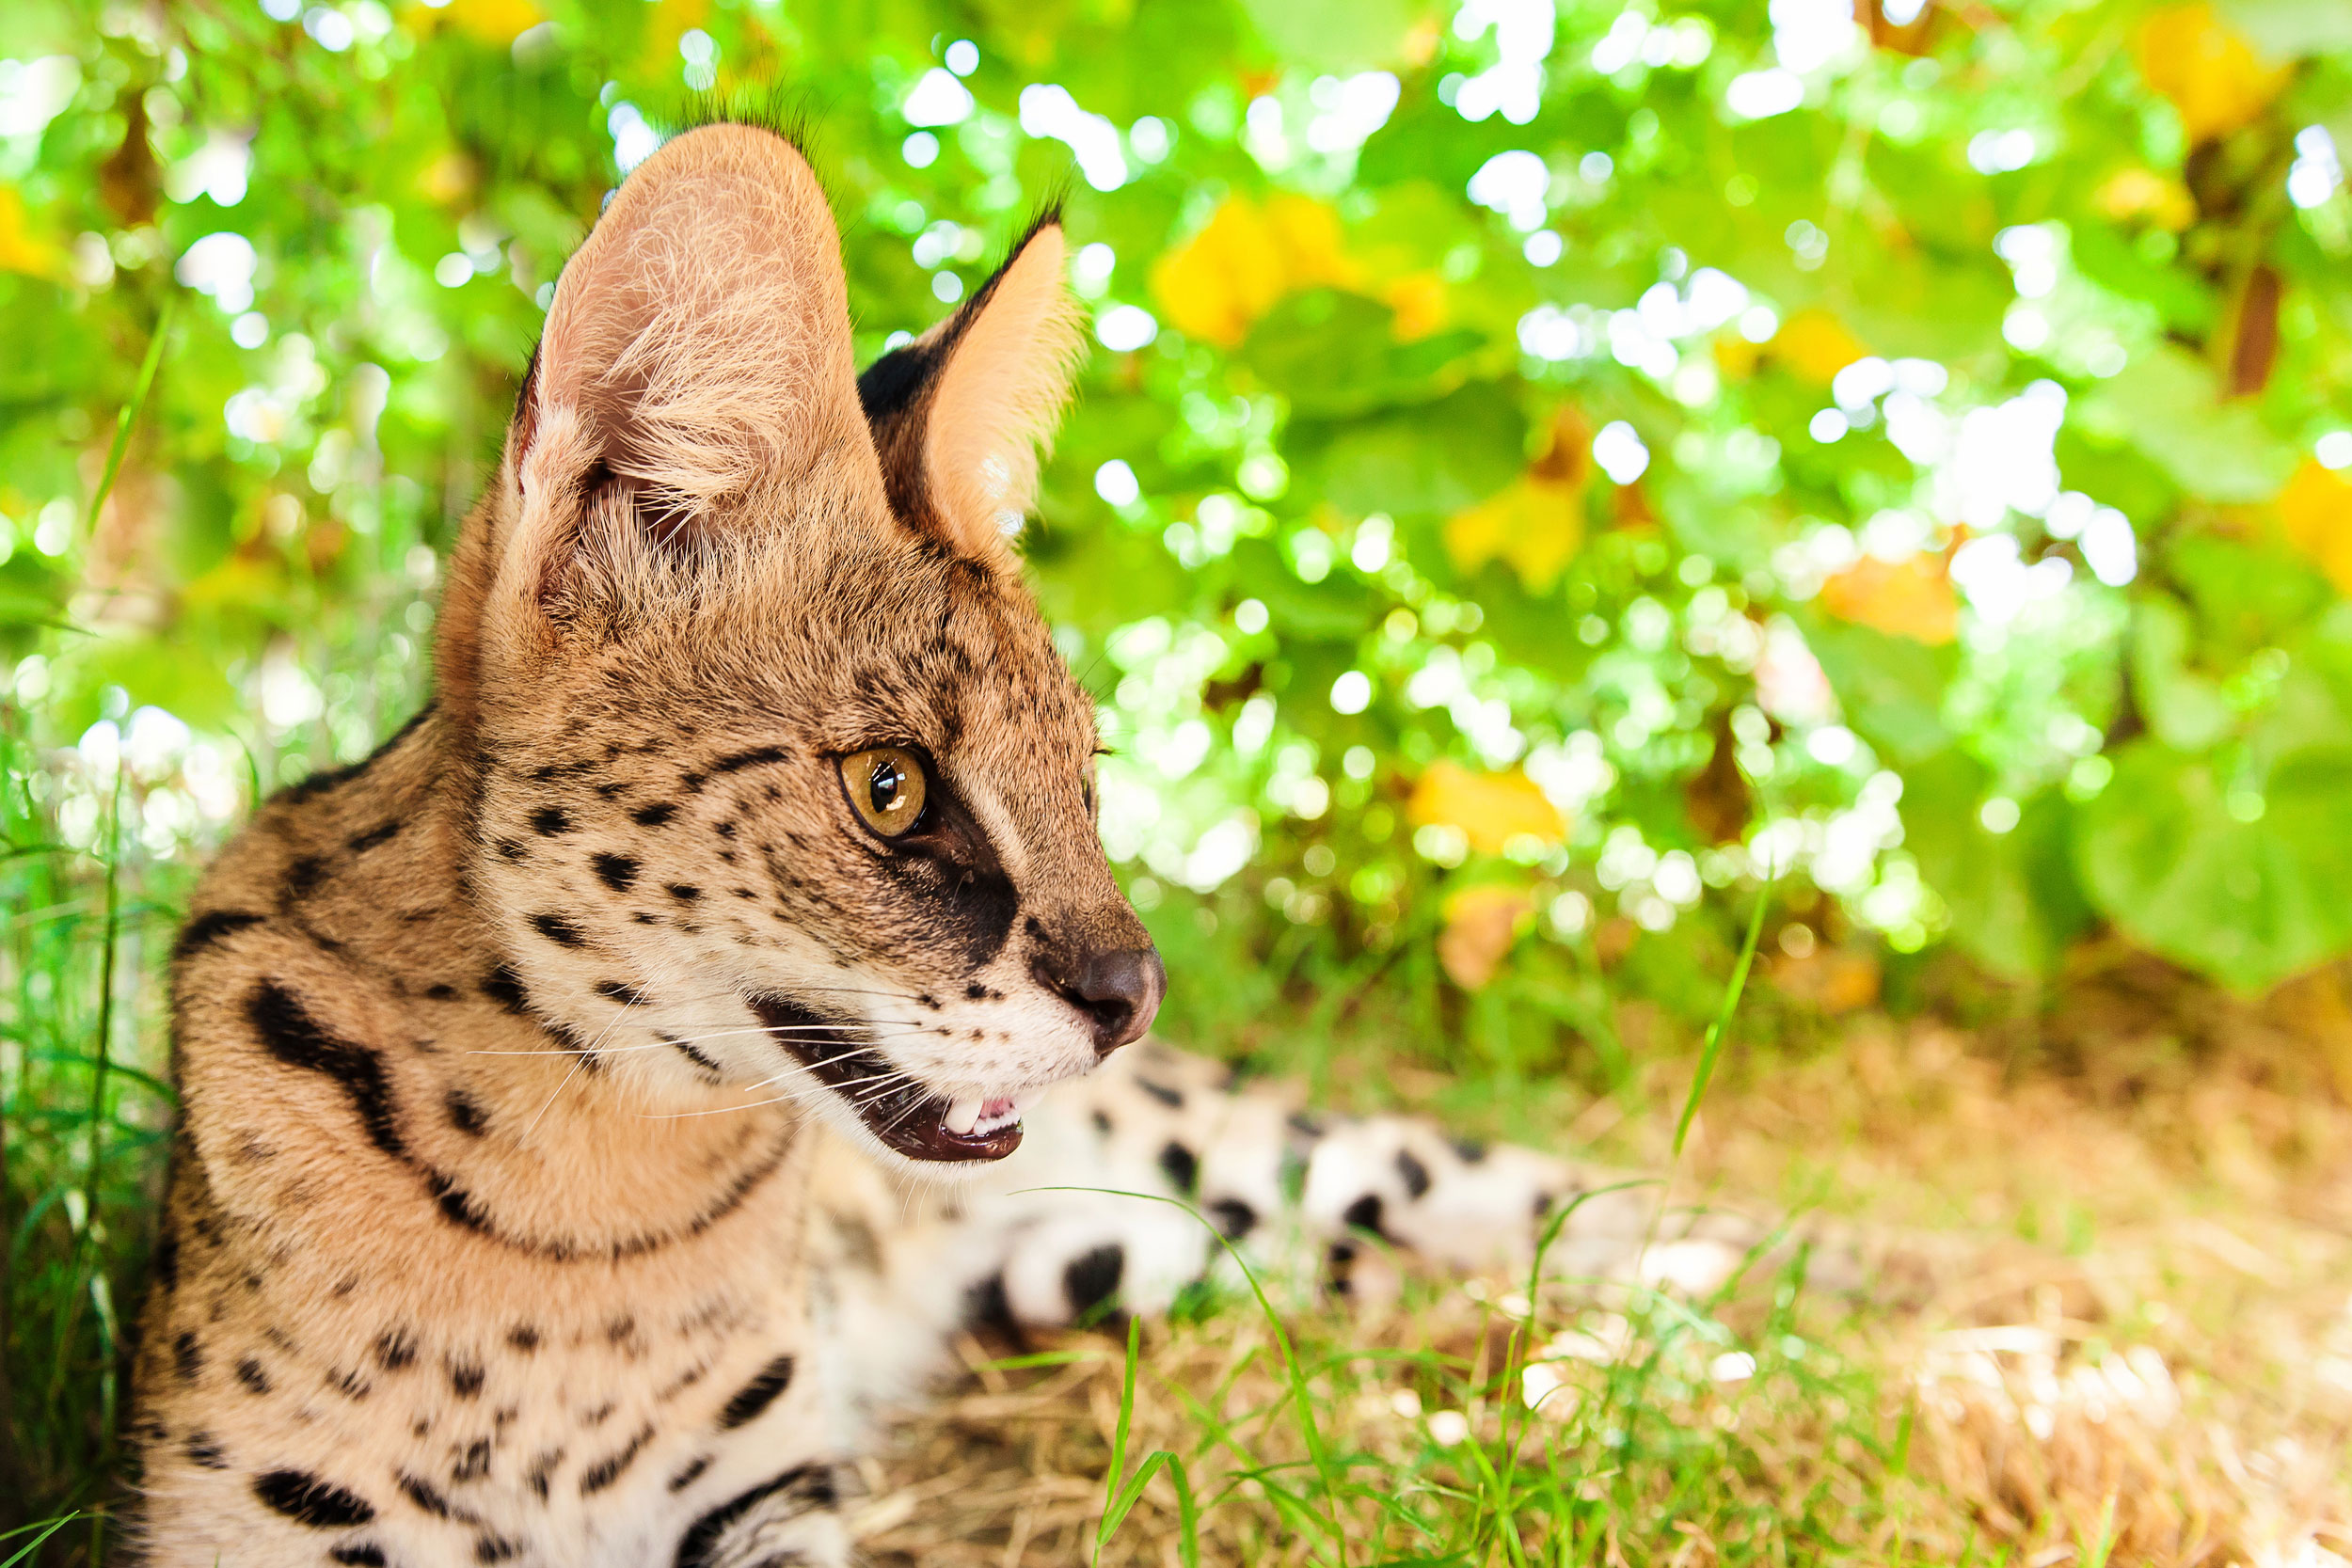 A1 Savannahs - The Original Founder of The Savannah Cat Breed